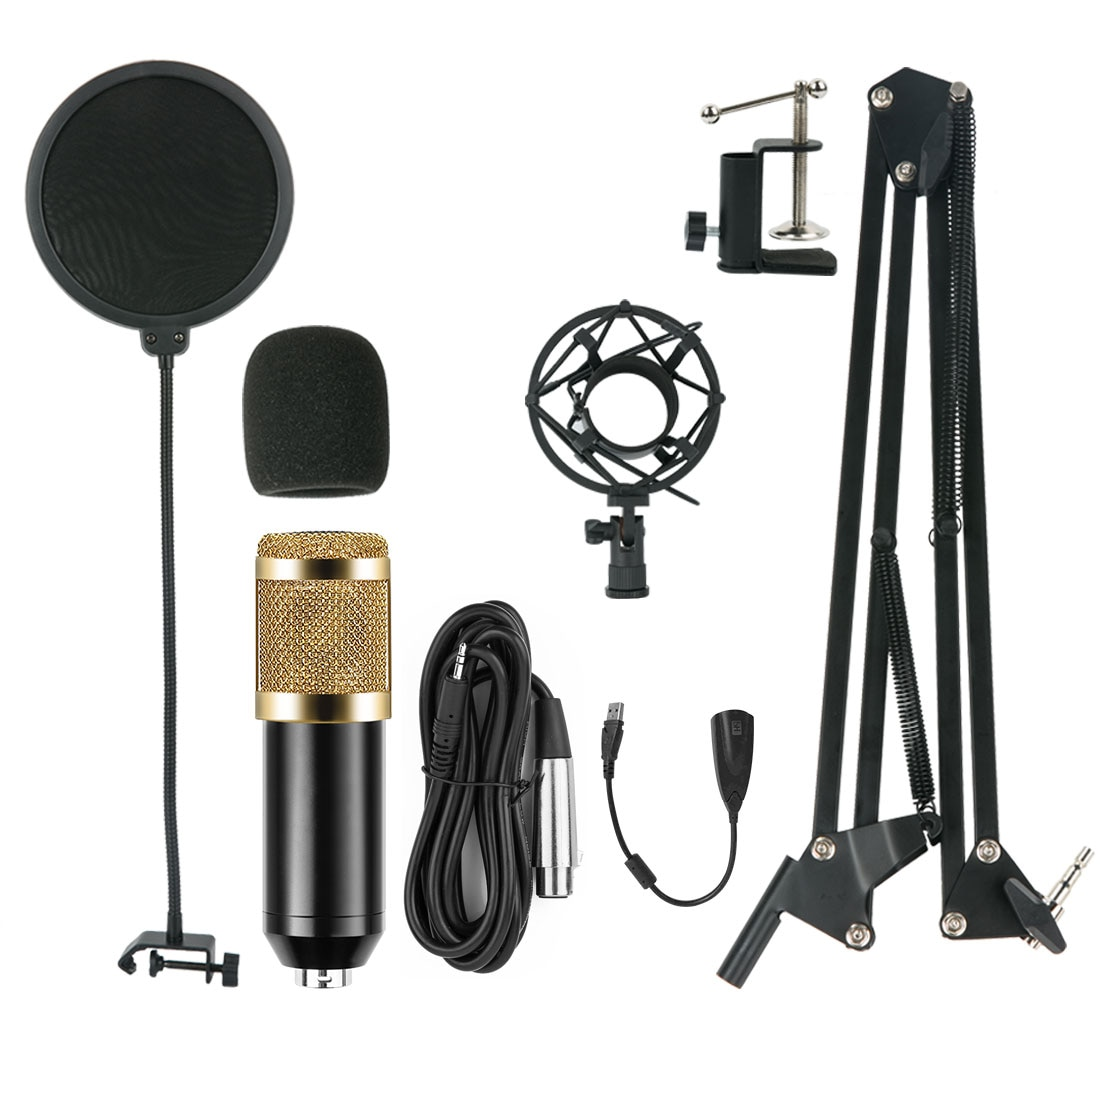 BM800 USB Condenser Microphone Kit BM-800 Cardioid Microphone Set with Sound Card for YouTube Studio Recording Vocals Voice Over